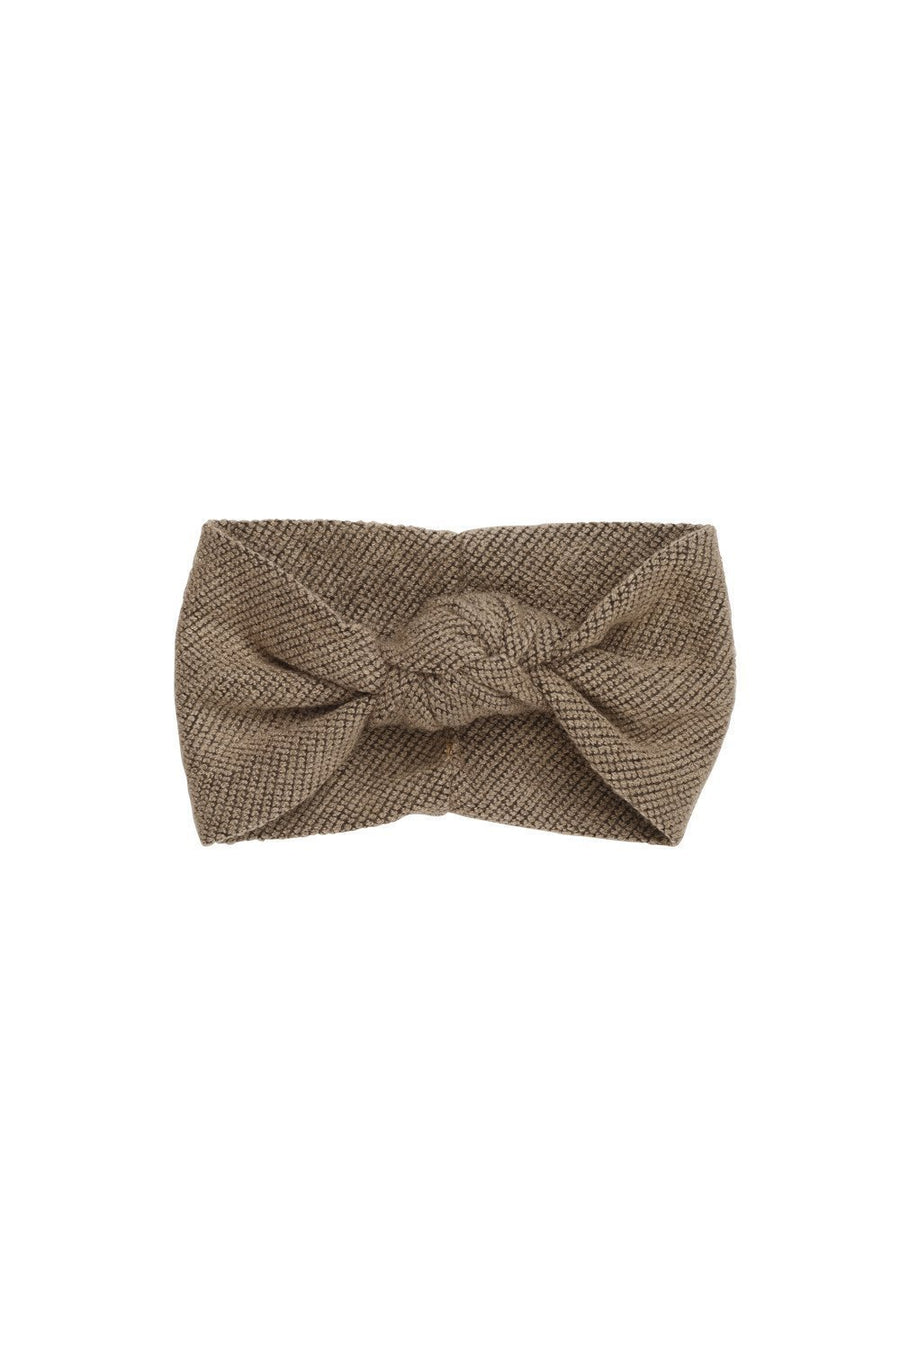 Knot Wrap - Sand Wool - PROJECT 6, modest fashion